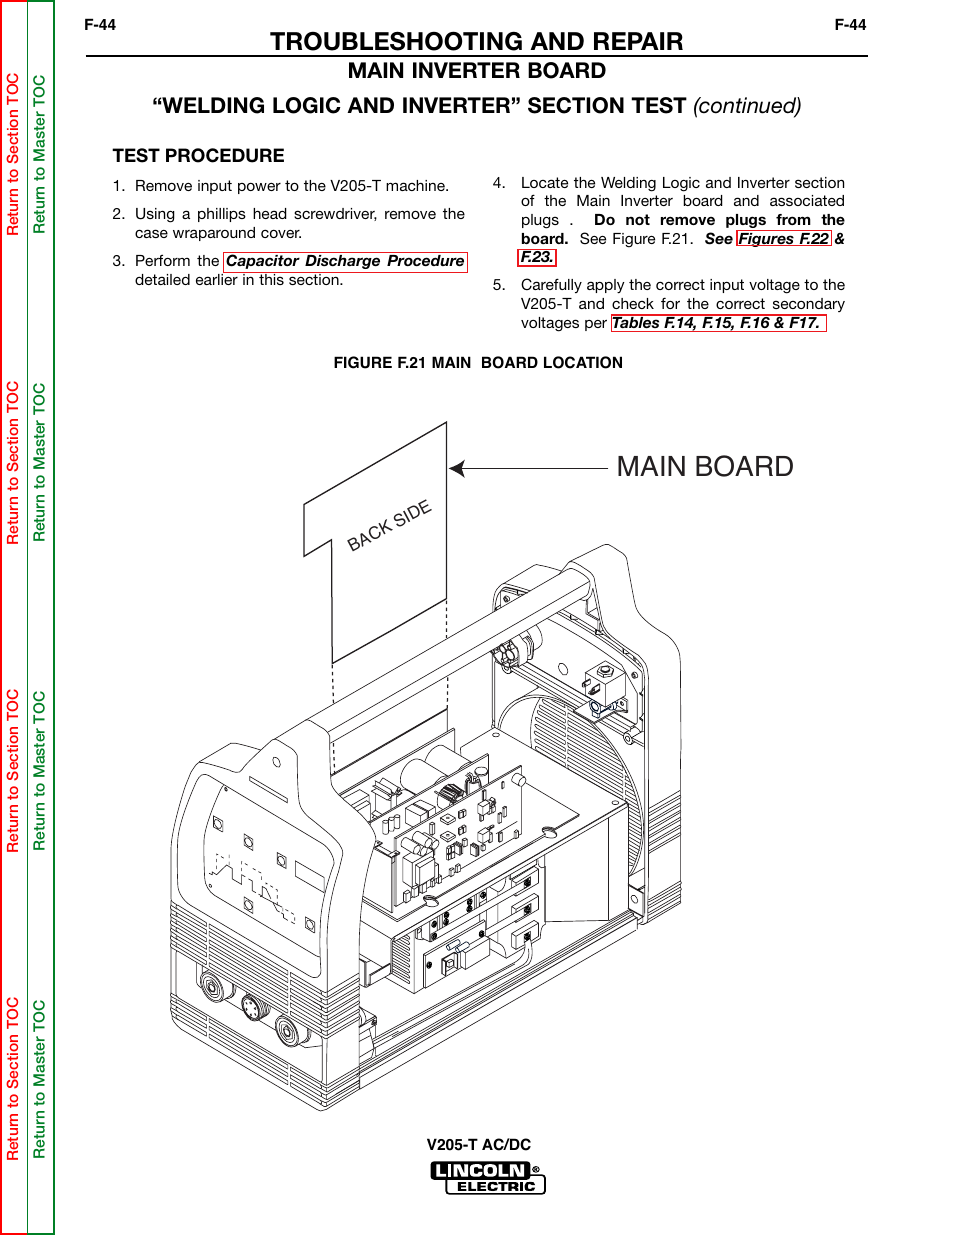 Main board, Troubleshooting and repair | Lincoln Electric Invertec V205-T  User Manual | Page 80 / 109